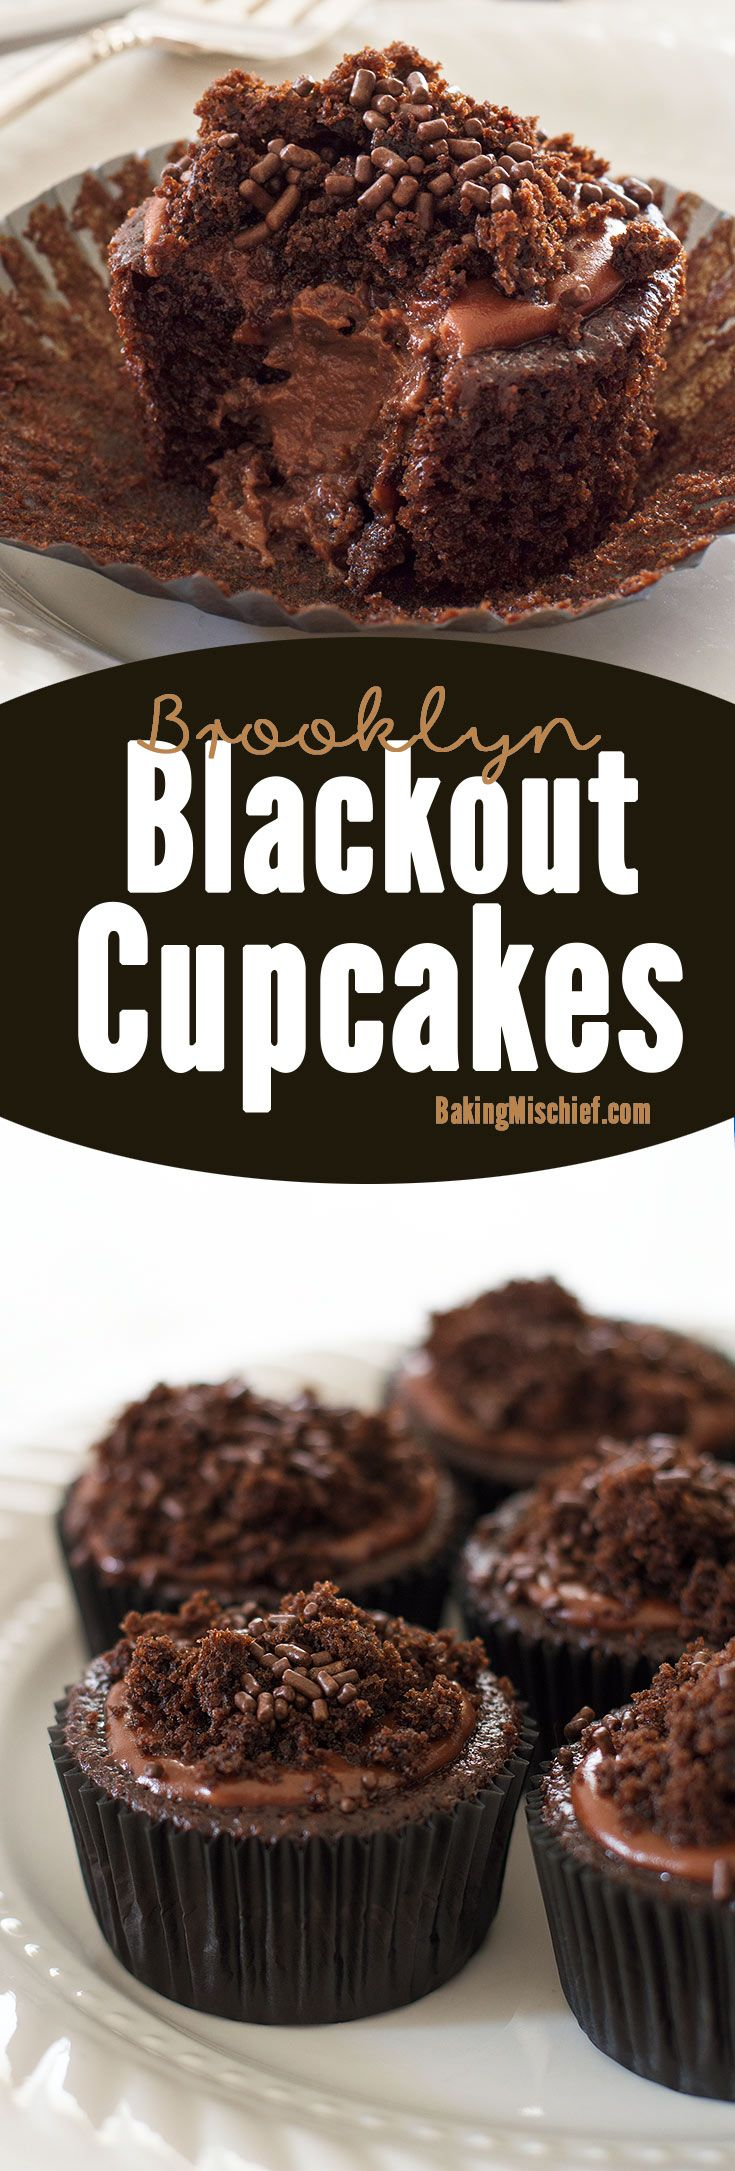 Insanely chocolatey Brooklyn Blackout Cupcakes made with three different types of chocolate, stuffed with a creamy chocolate pudding, and topped with sprinkles and a chocolate glaze. Recipe includes nutritional information. From BakingMischief.com